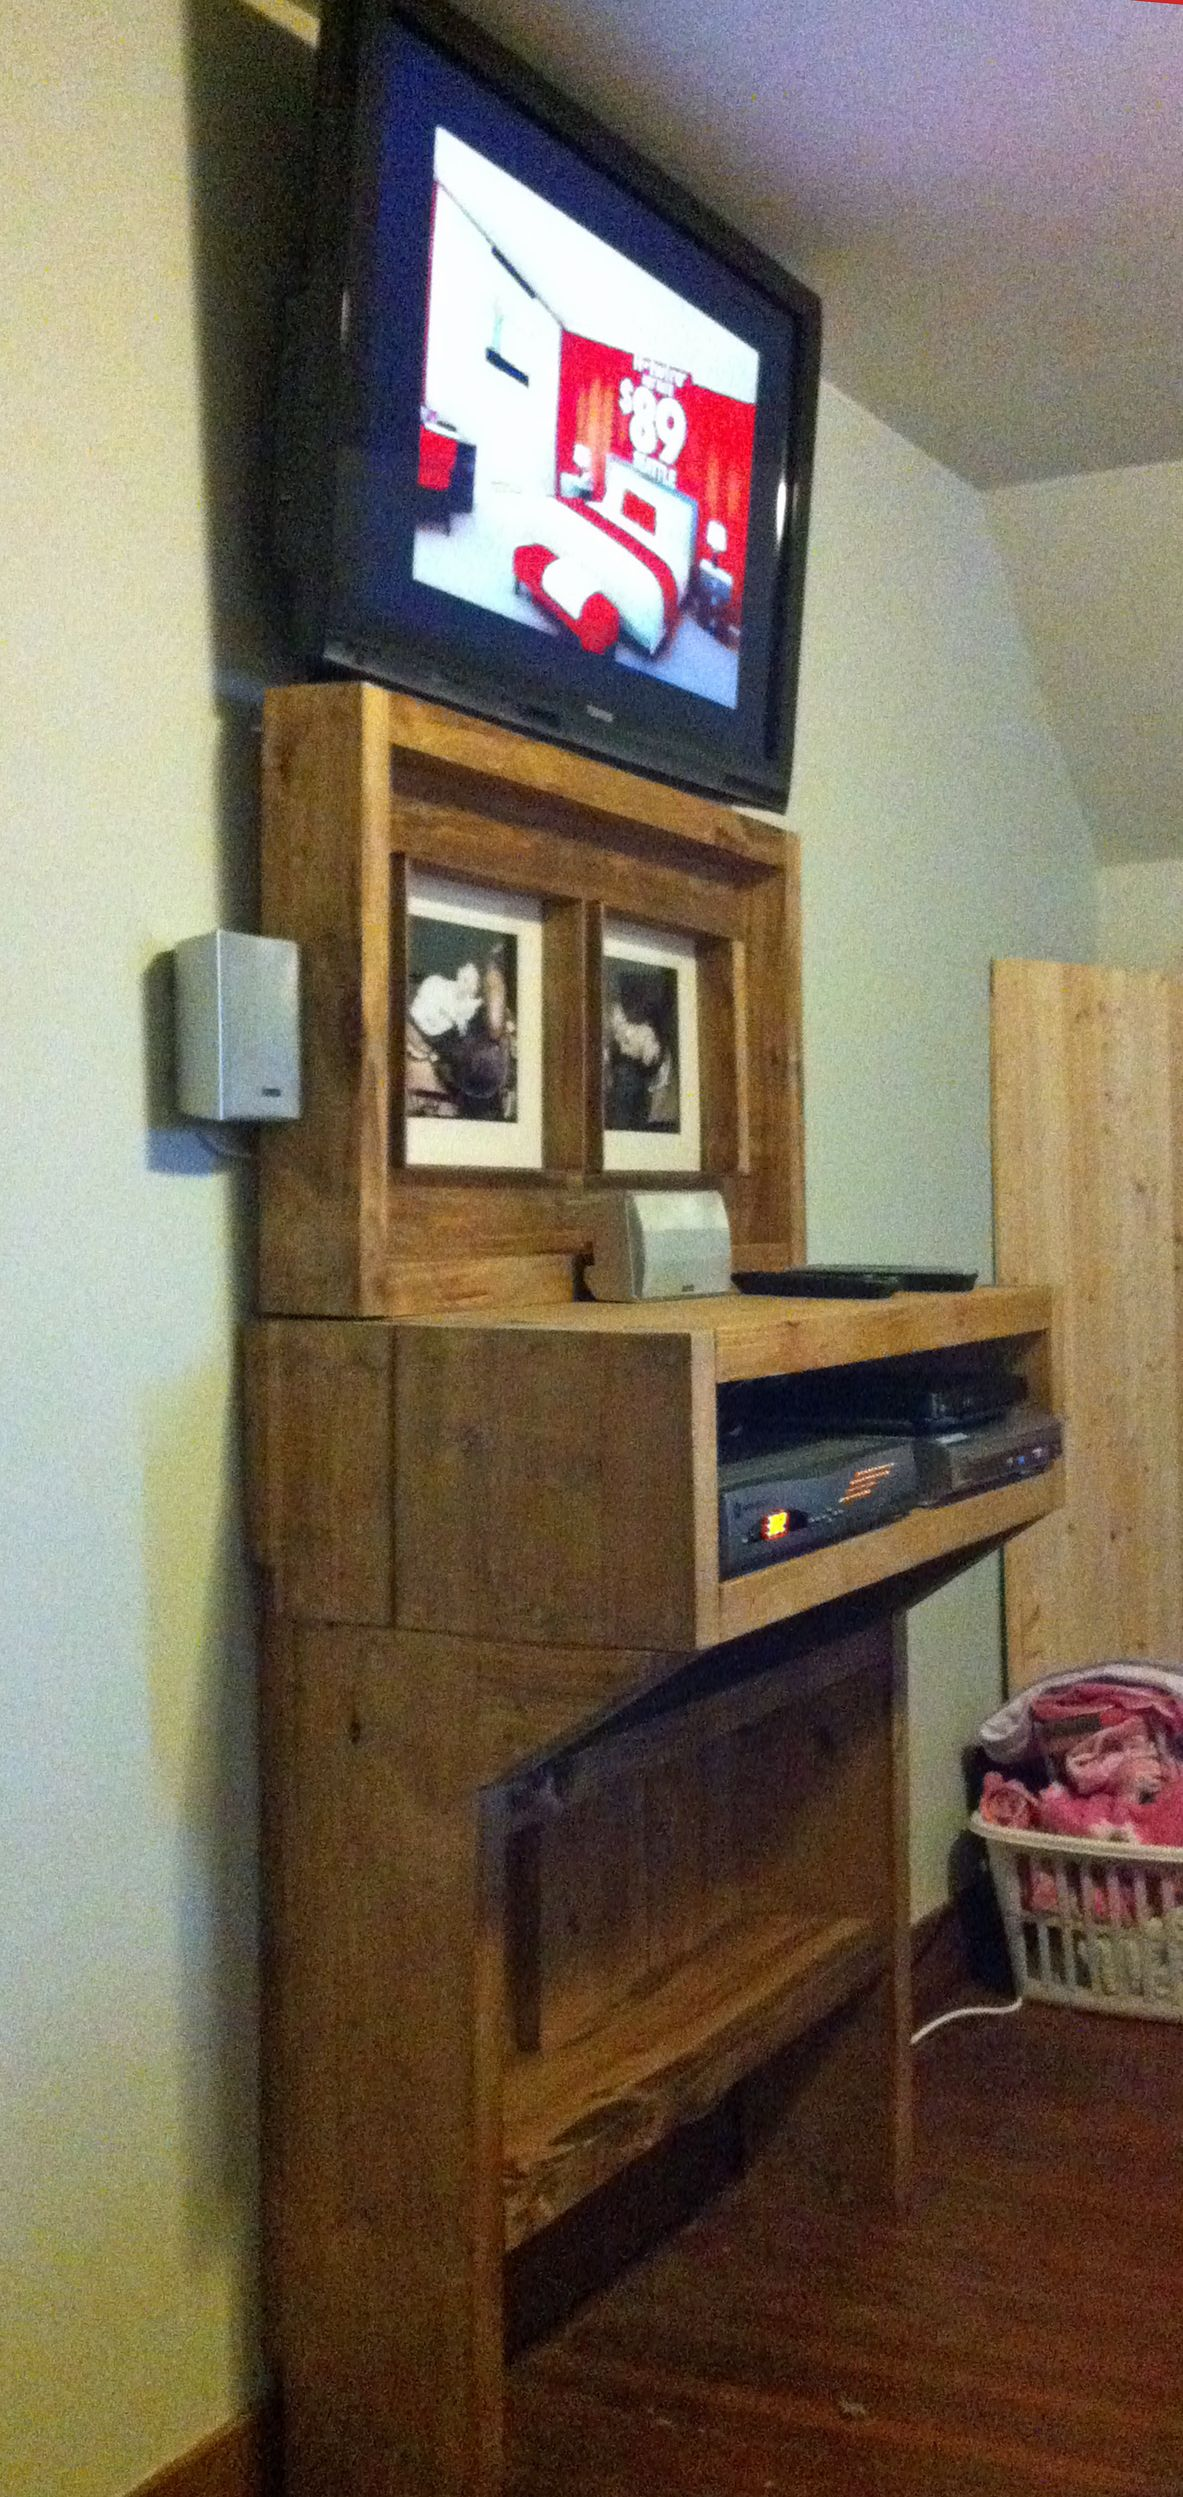 The Bedroom TV Shelf Project Wall mounted tv, Wooden